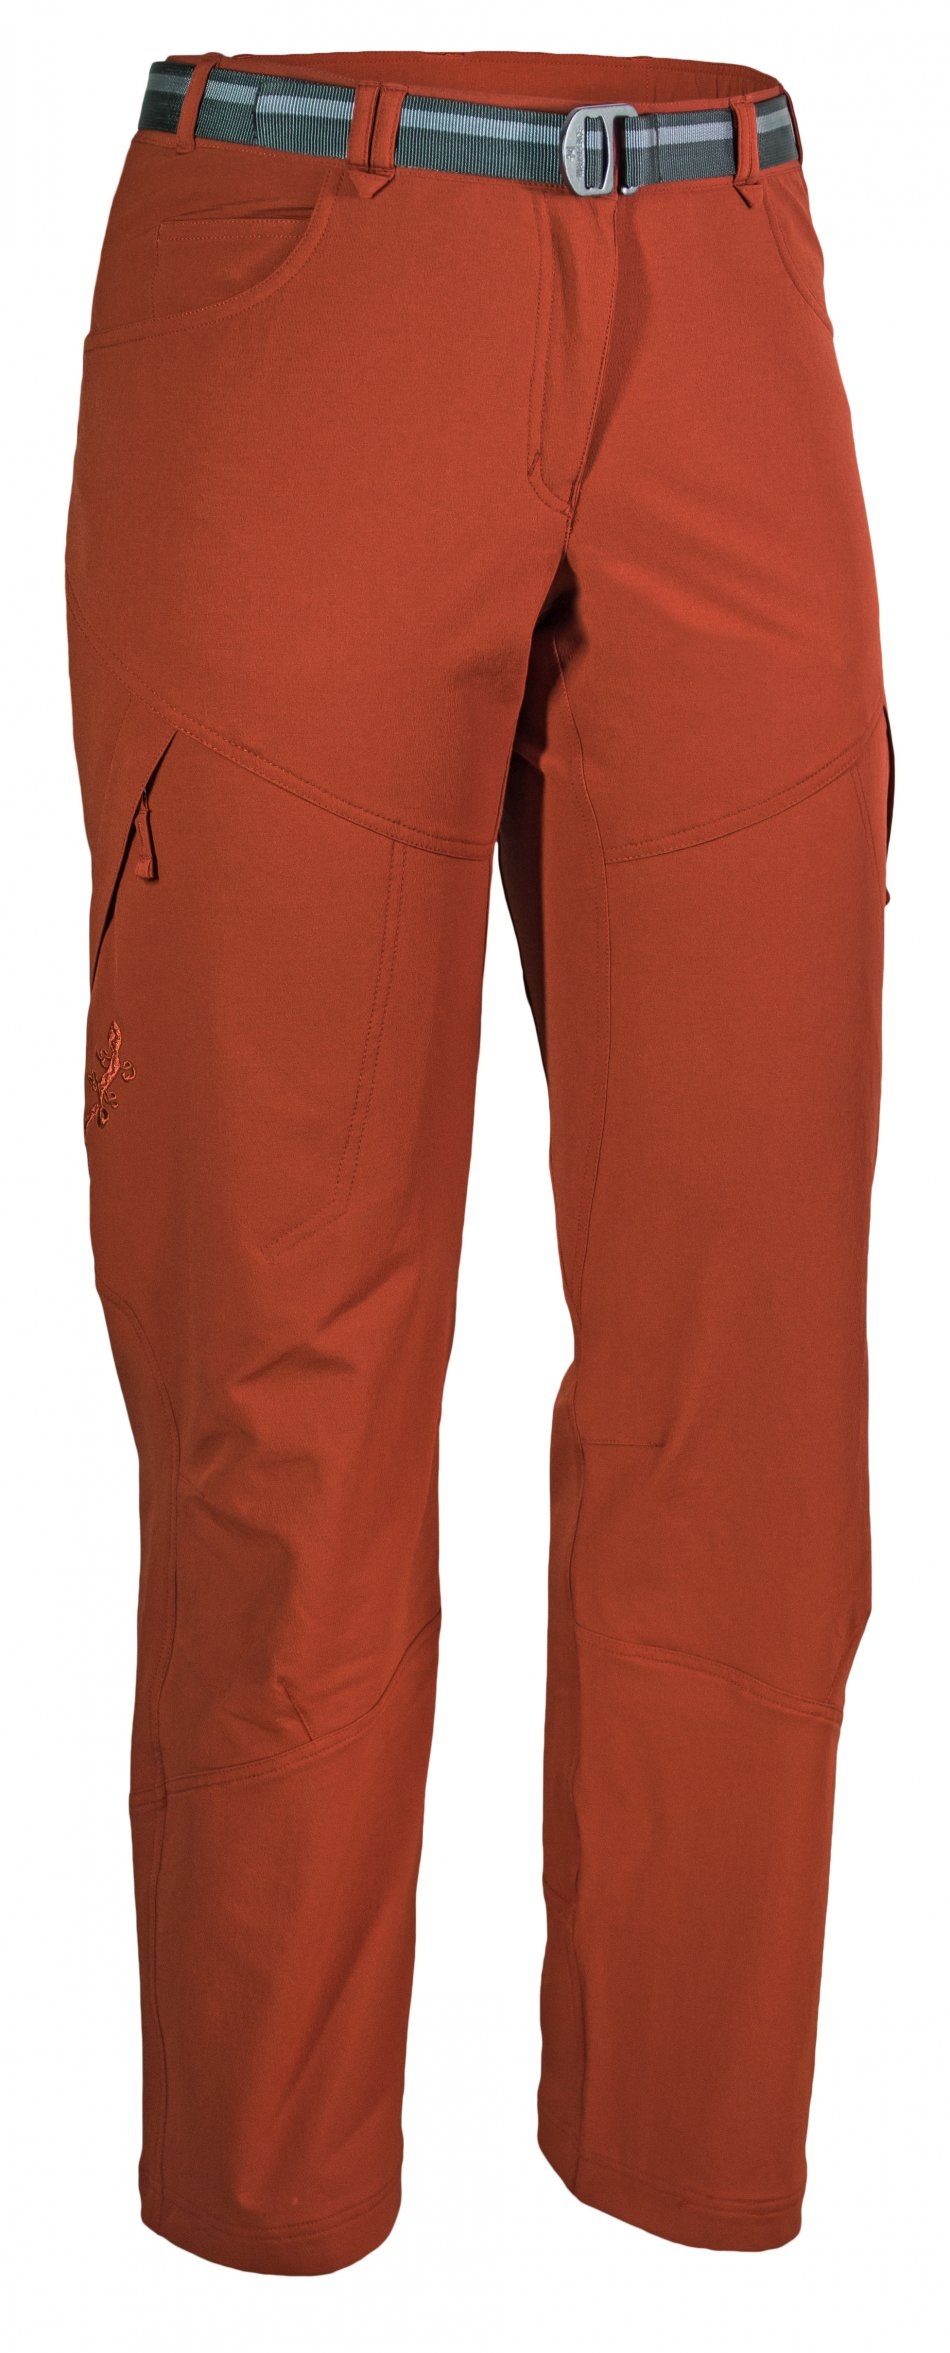 4332 Torpa II pants brick